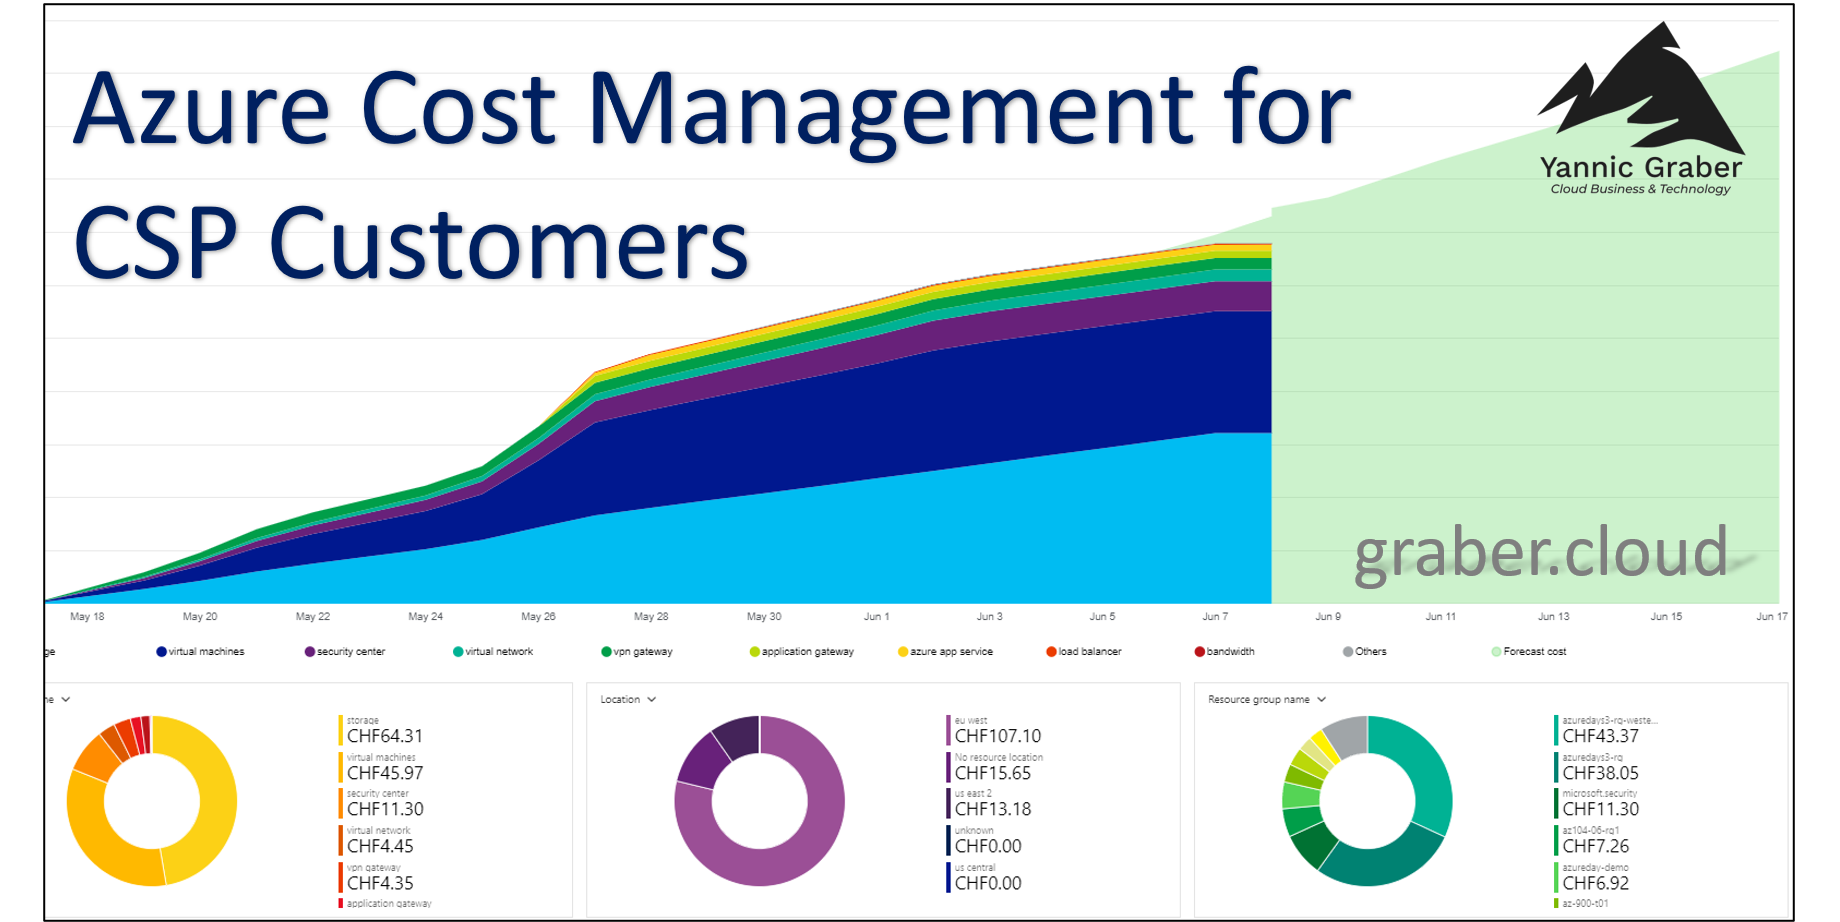 Azure COst Management for CSP Customers